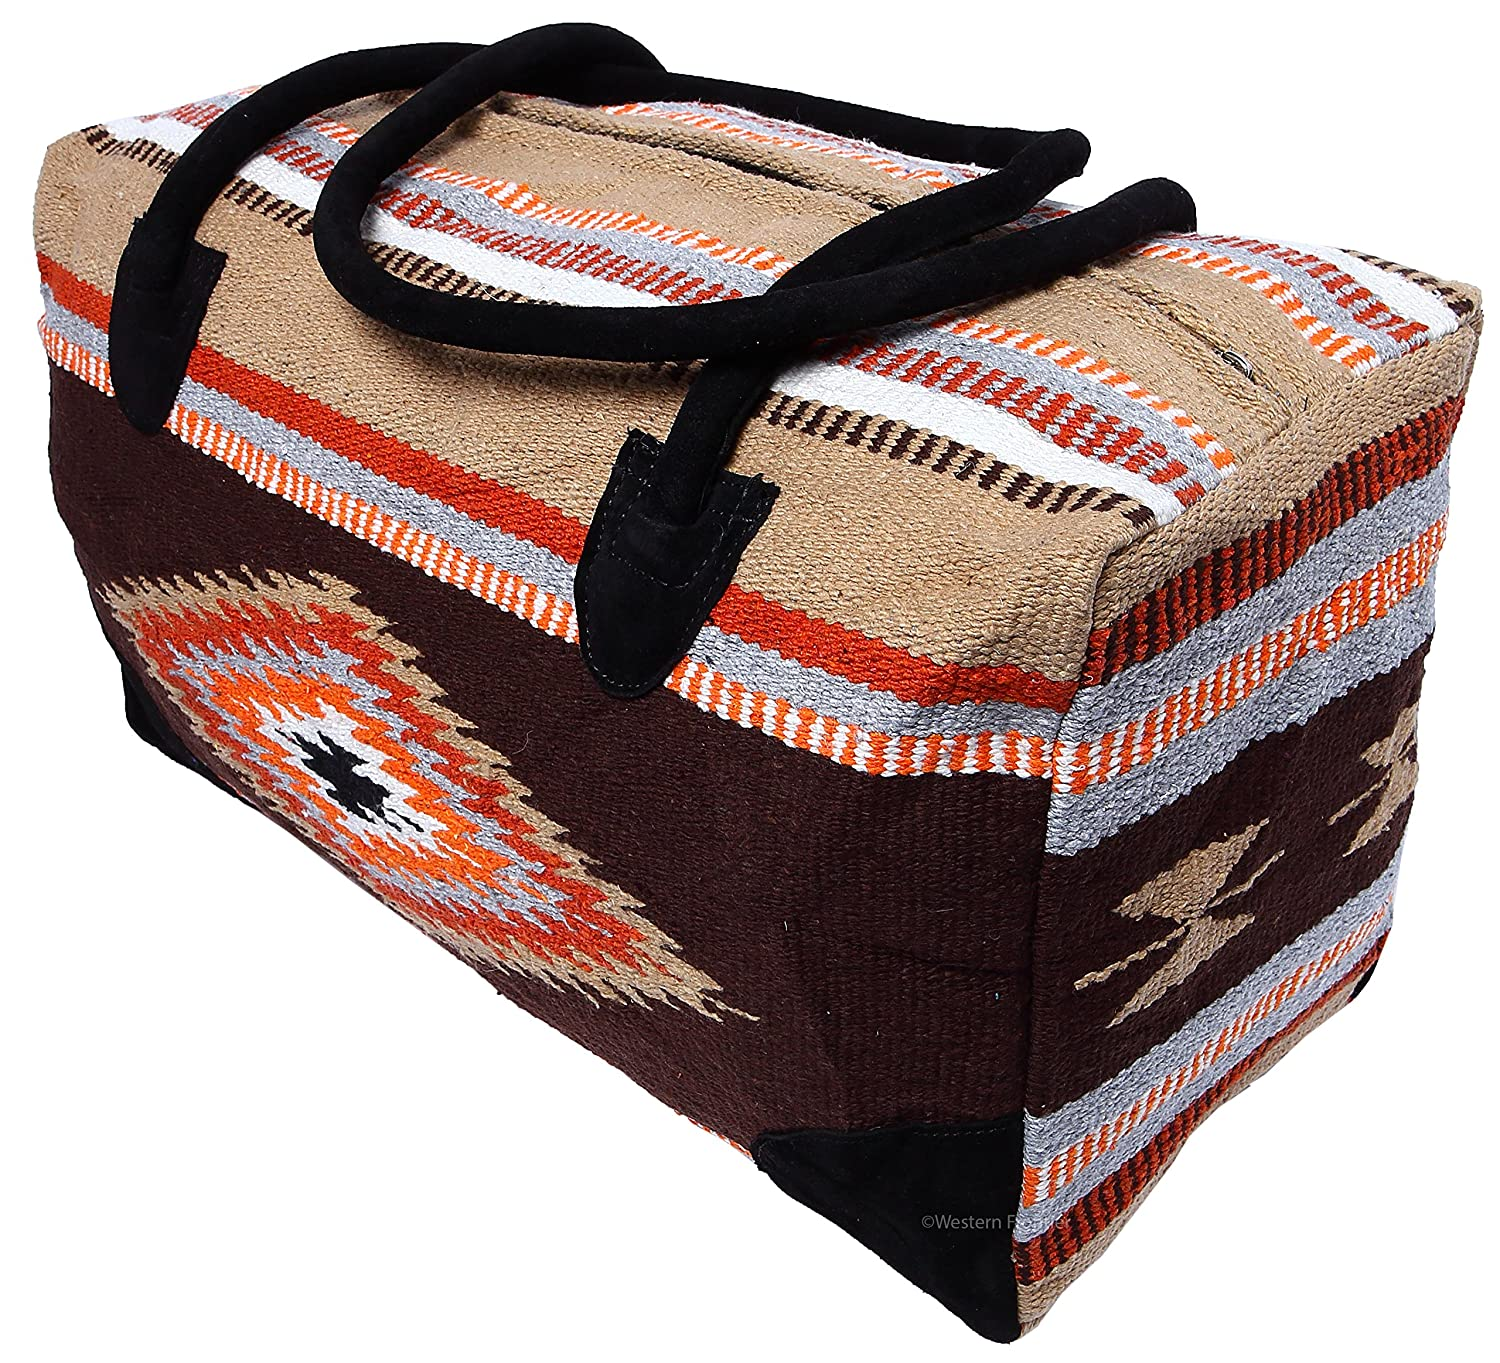 El Paso Designs Southwest Duffel Bag- Camino Real Native American and Mexican Style Jumbo Large Travel Bags (La Paz)